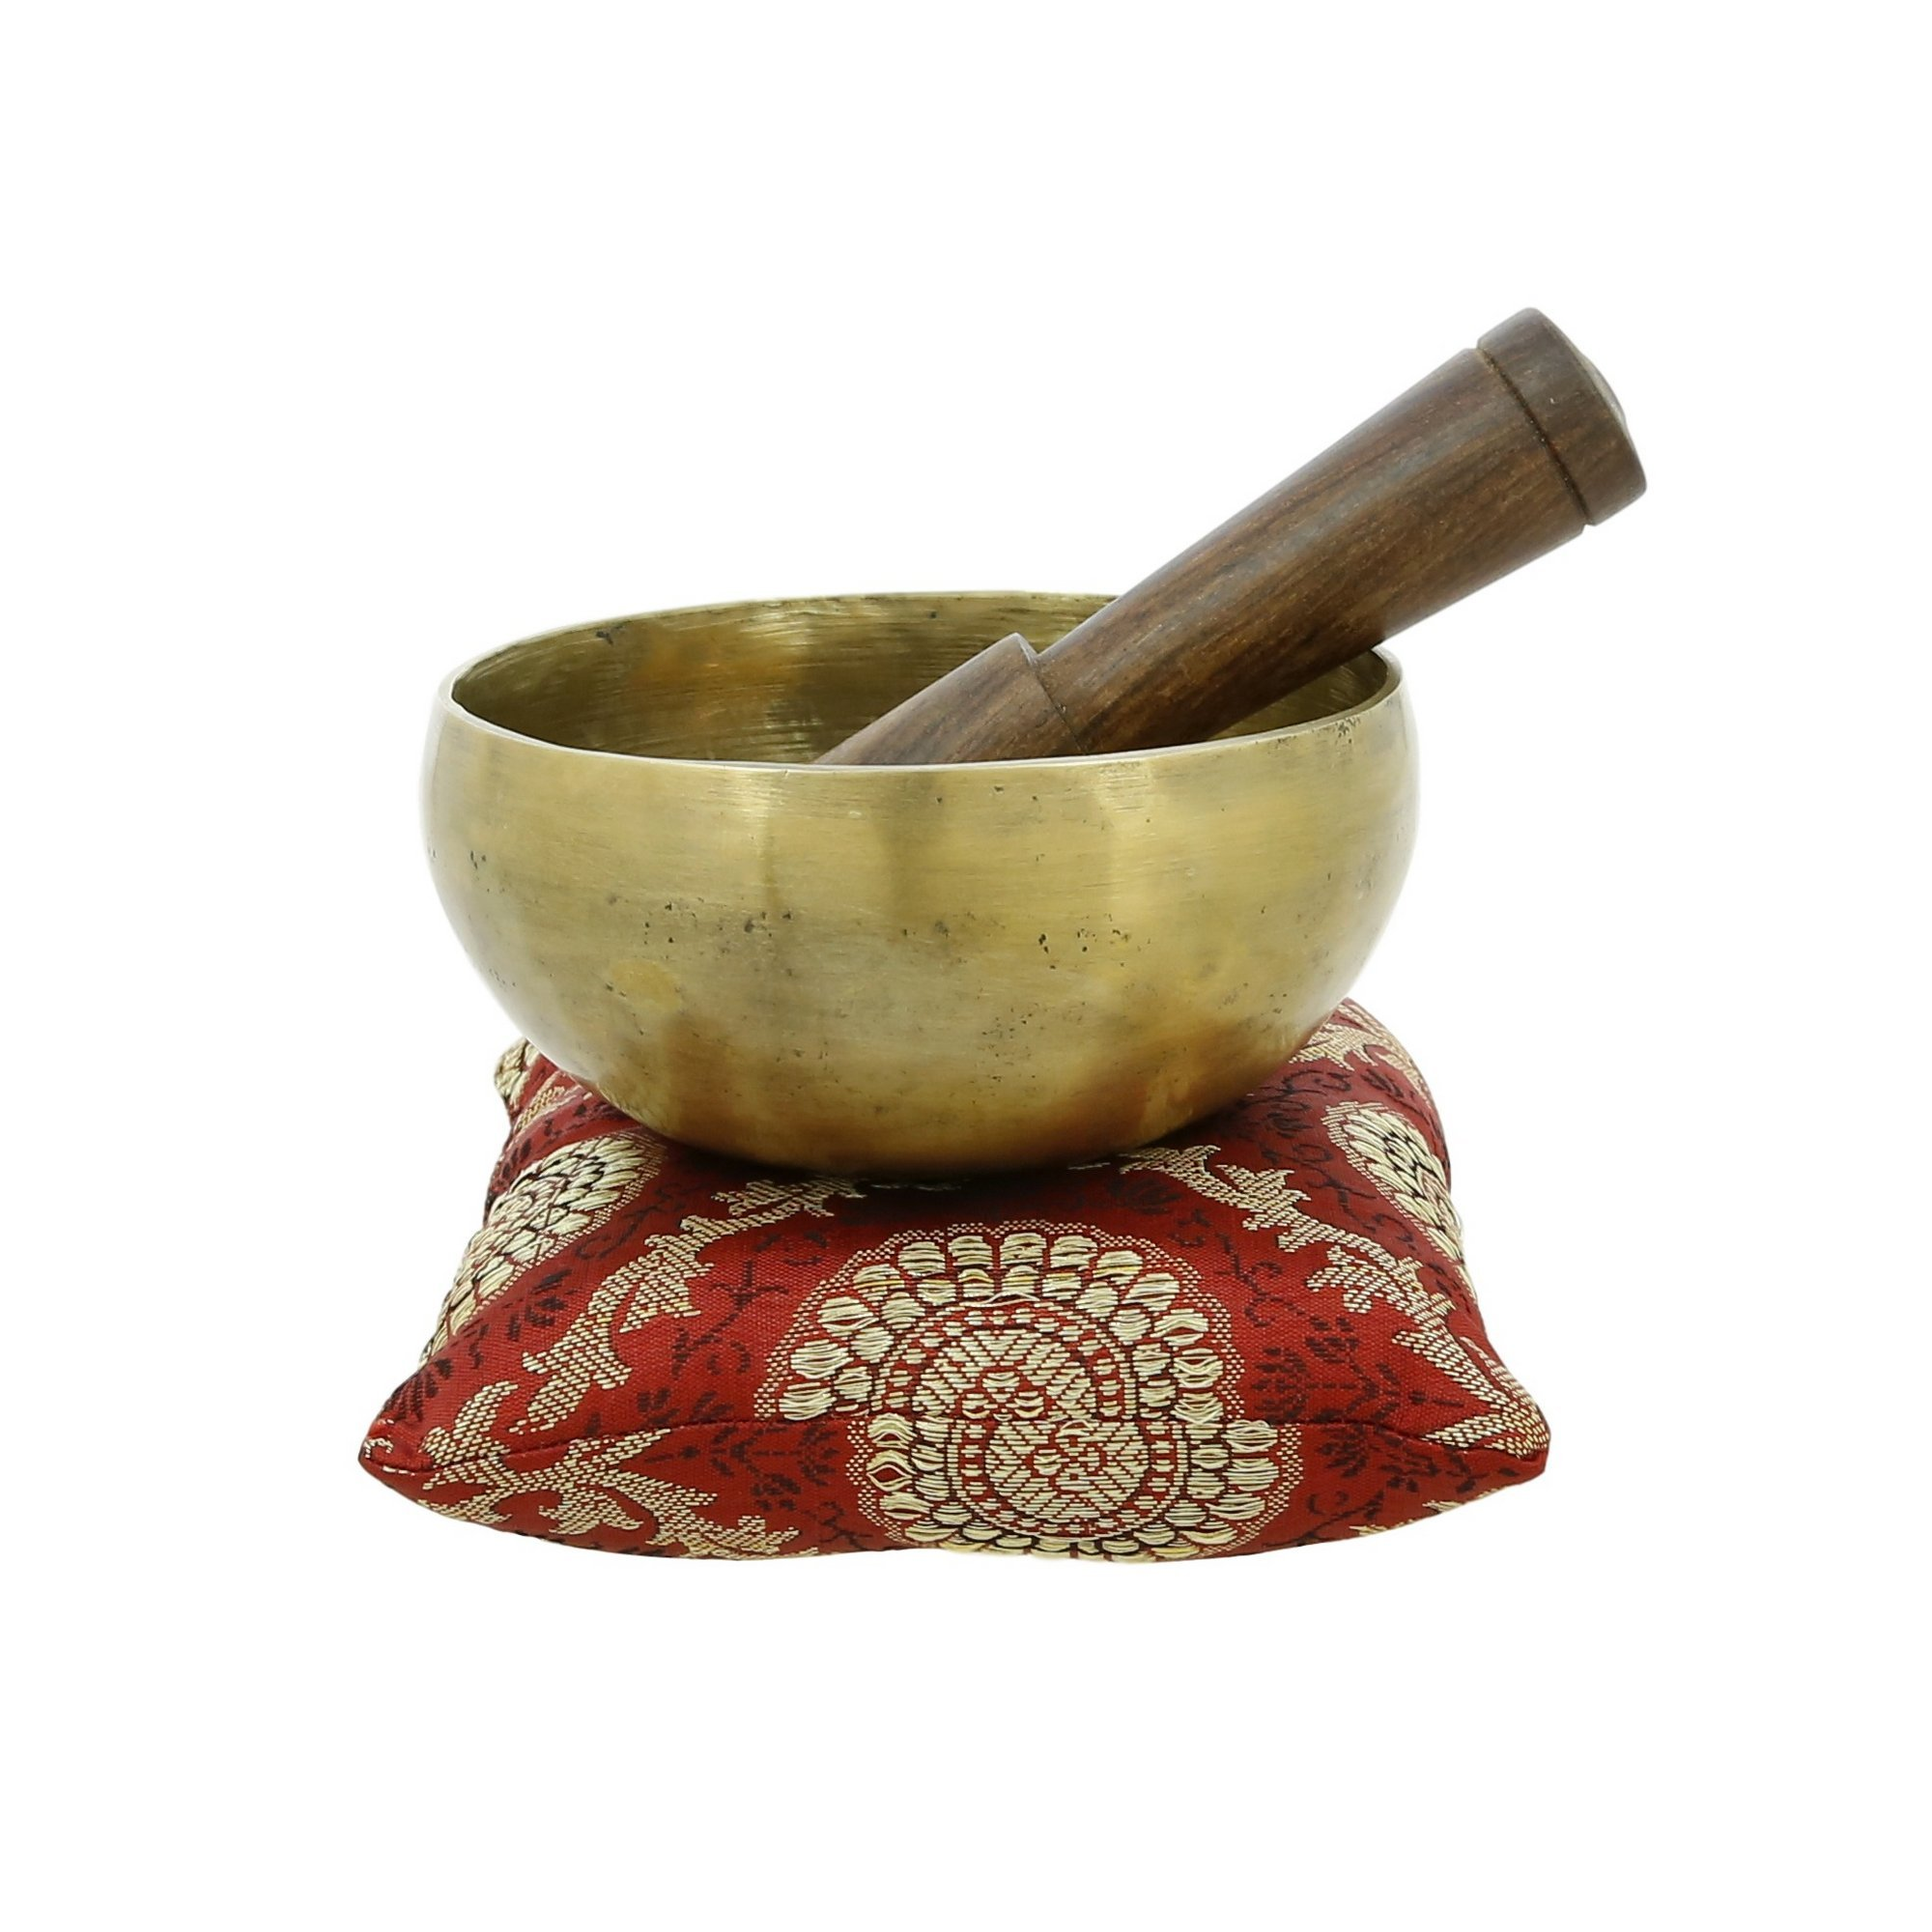 Handmade 5 Inches Bell Metal Tibetan Buddhist Singing Bowl Musical Instrument for Meditation with Stick and Cushion